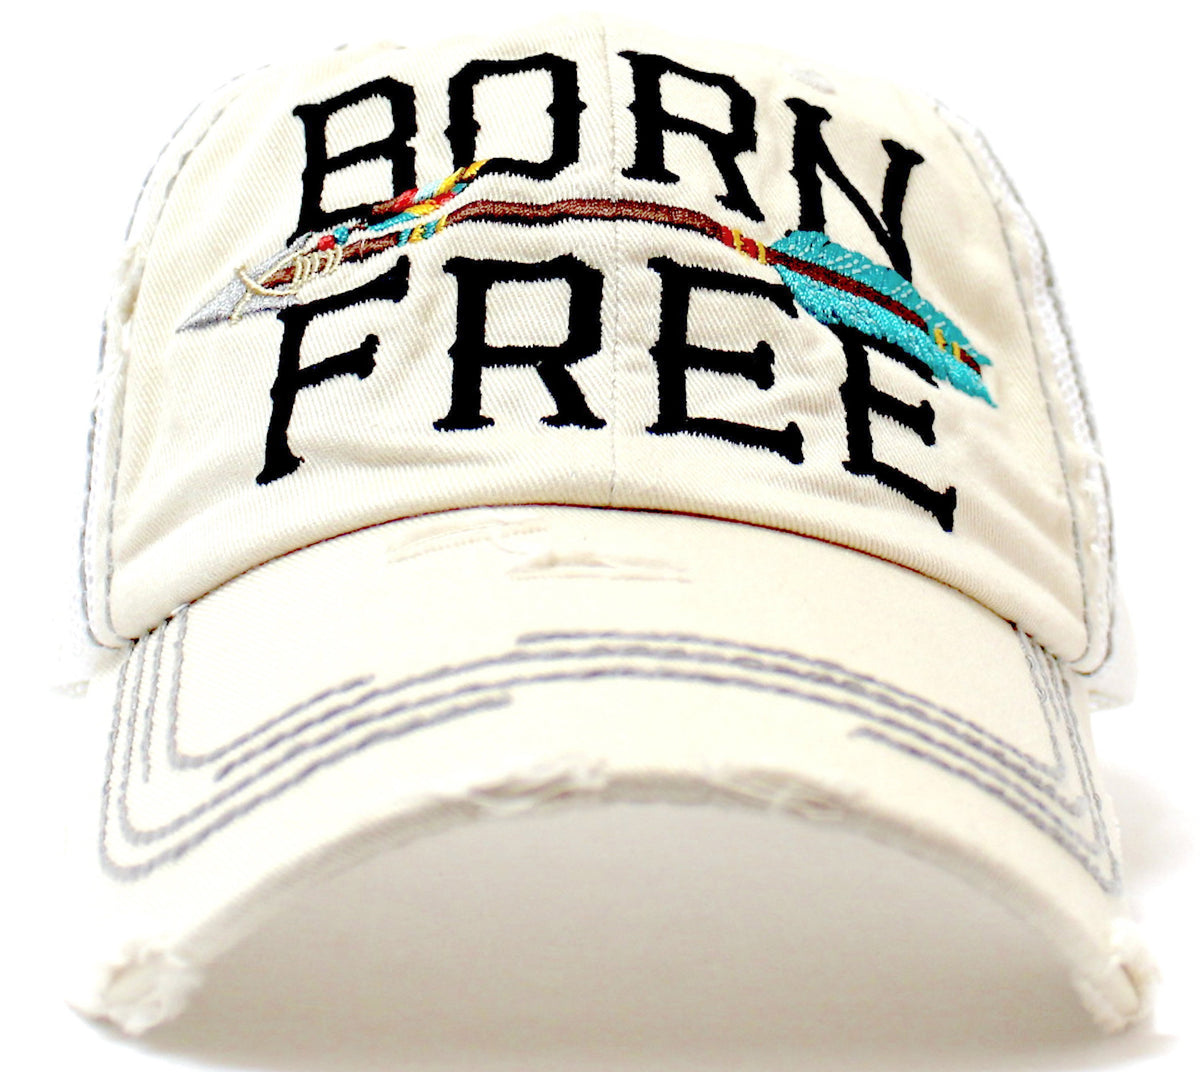 "SEASHELL STONE ""BORN FREE"" Embroidery Vintage Trucker Hat, Pink Mesh Back & Arrow - Caps 'N Vintage"